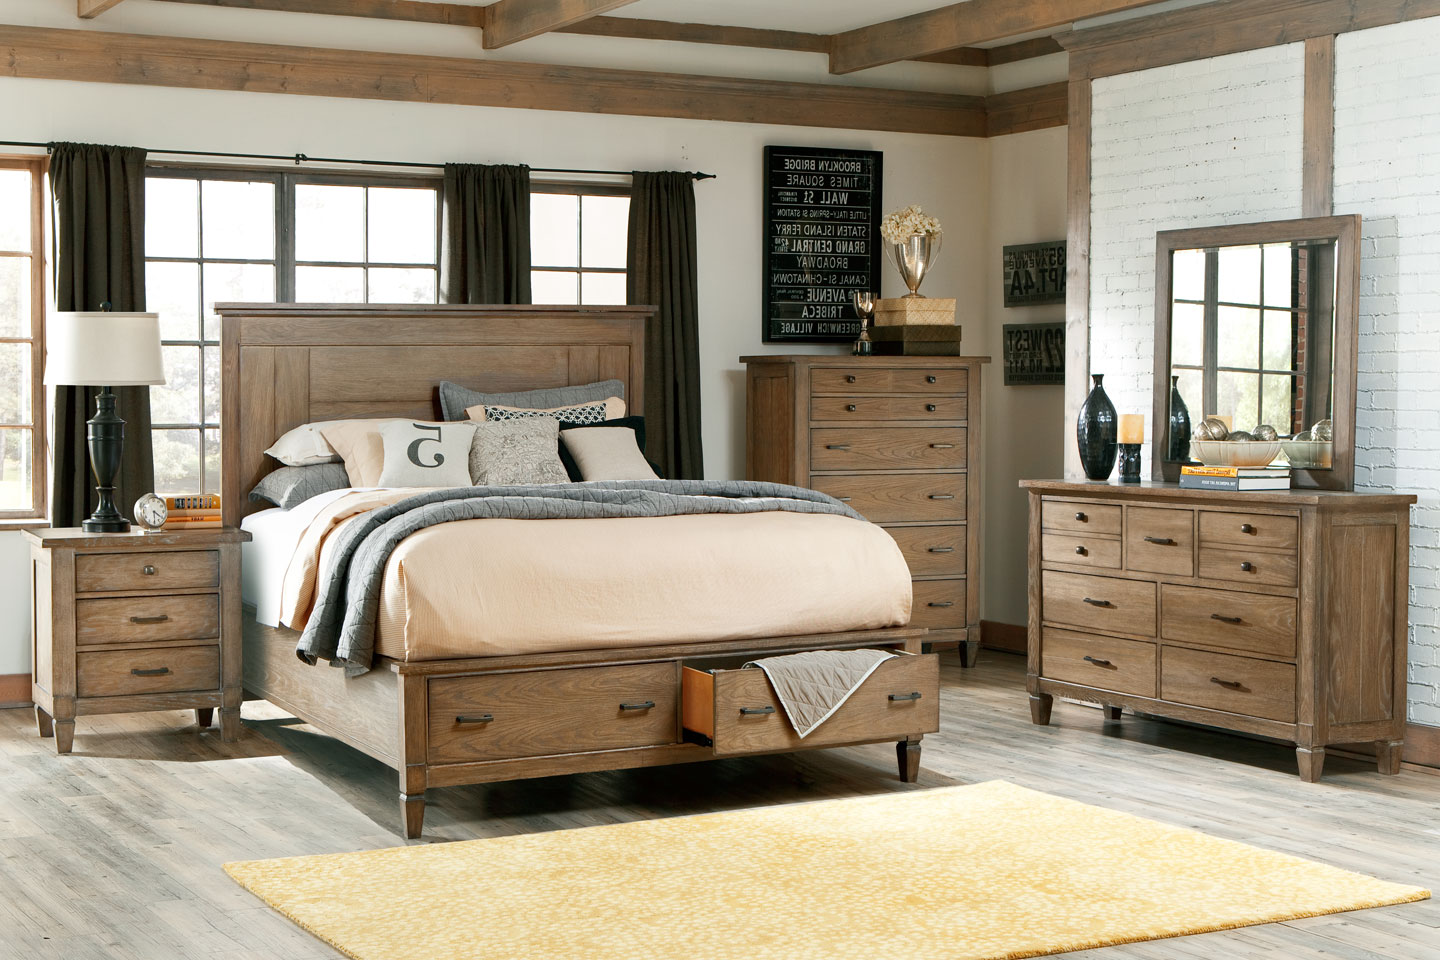 Gavin wood bedroom furniture collection wood bedroom furniture Wooden furniture design for bedroom